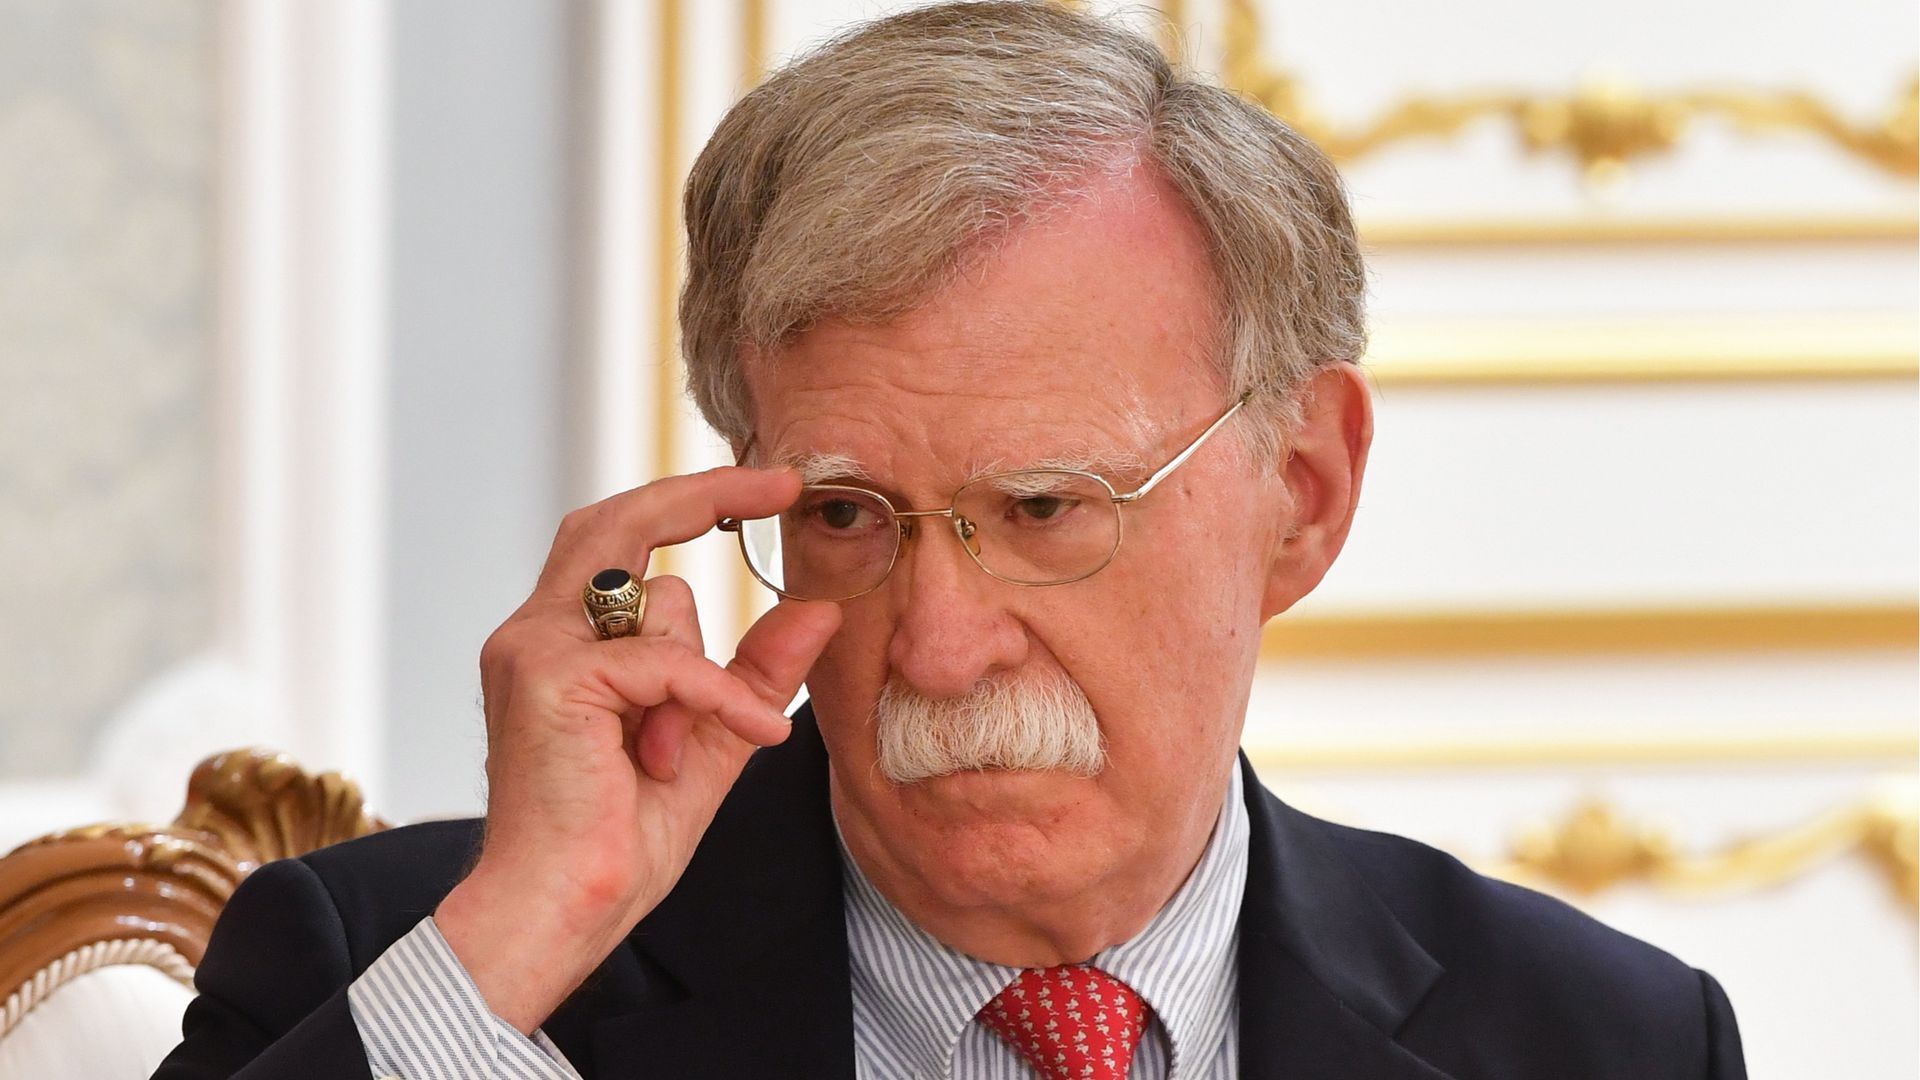 Then-national security advisor John Bolton during a meeting.